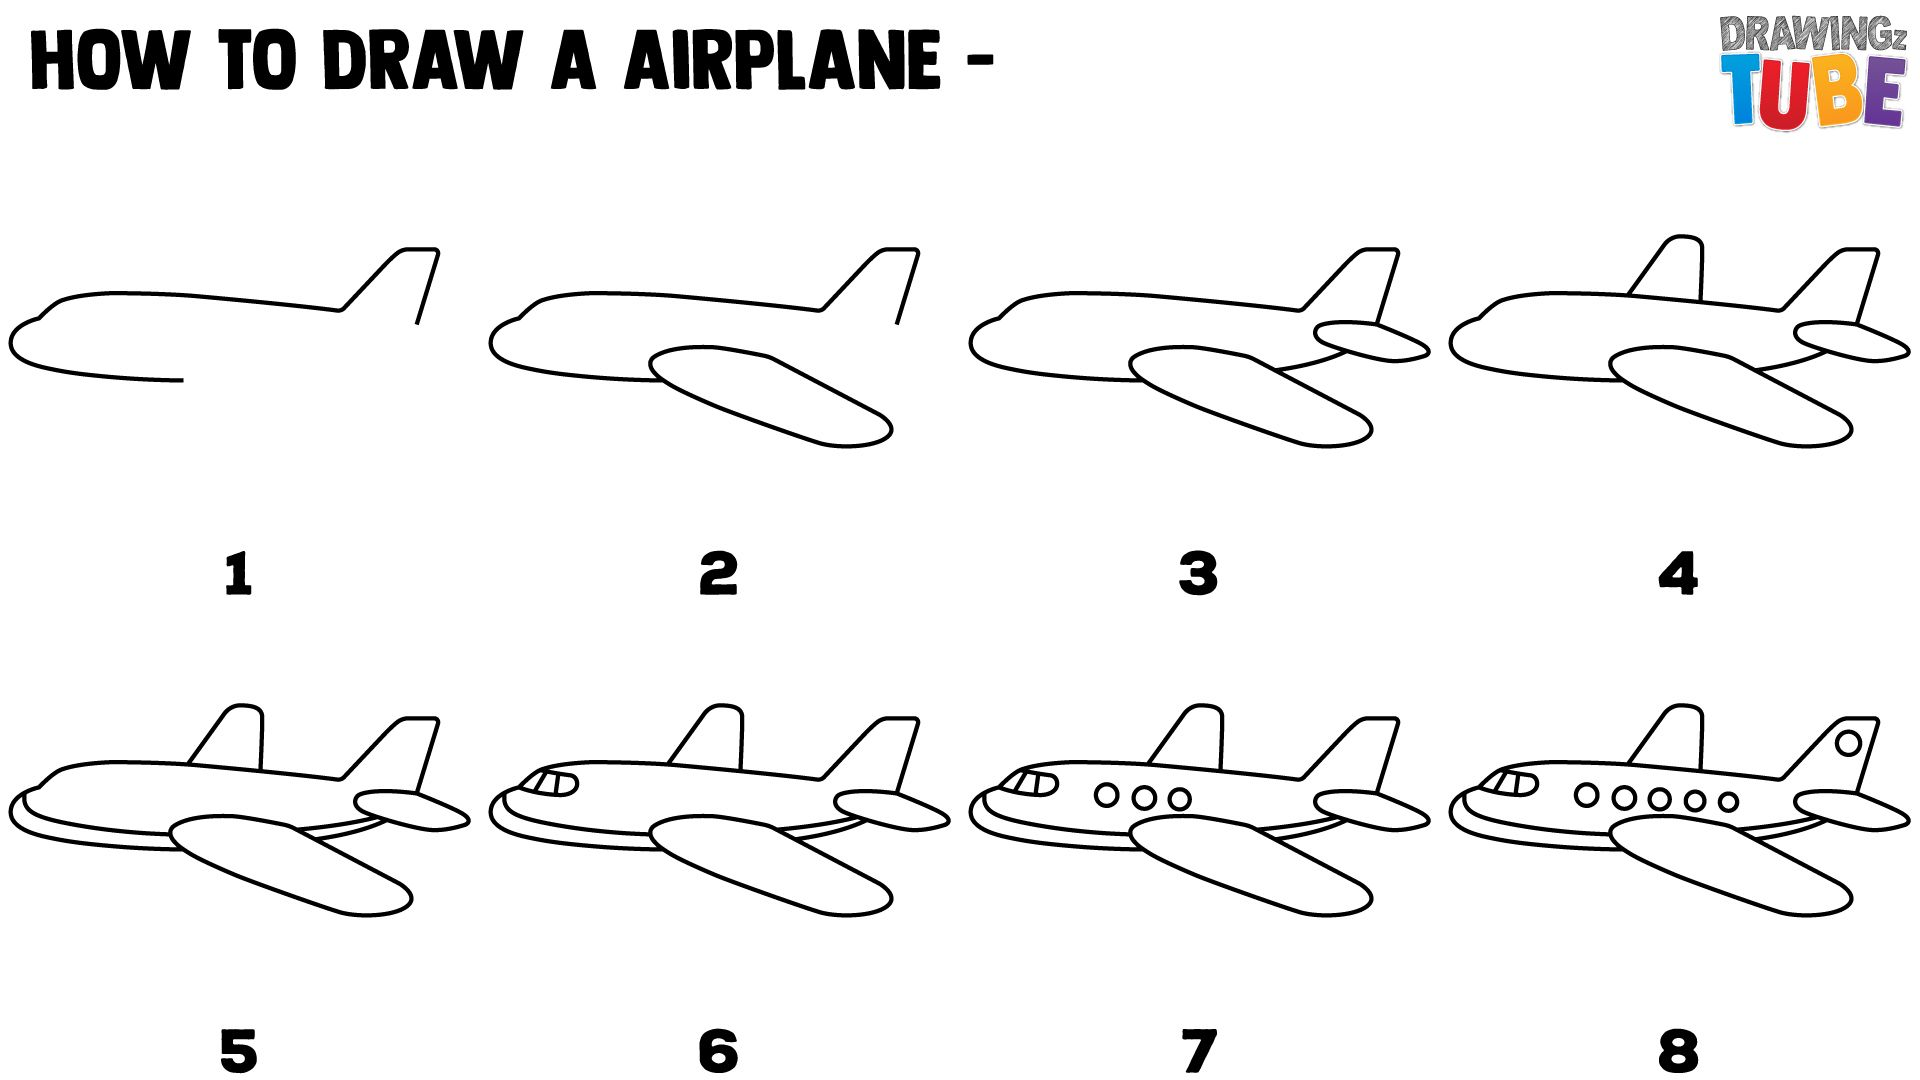 How To Draw Toy Airplane For Kids Step By Step Drawings For Kids